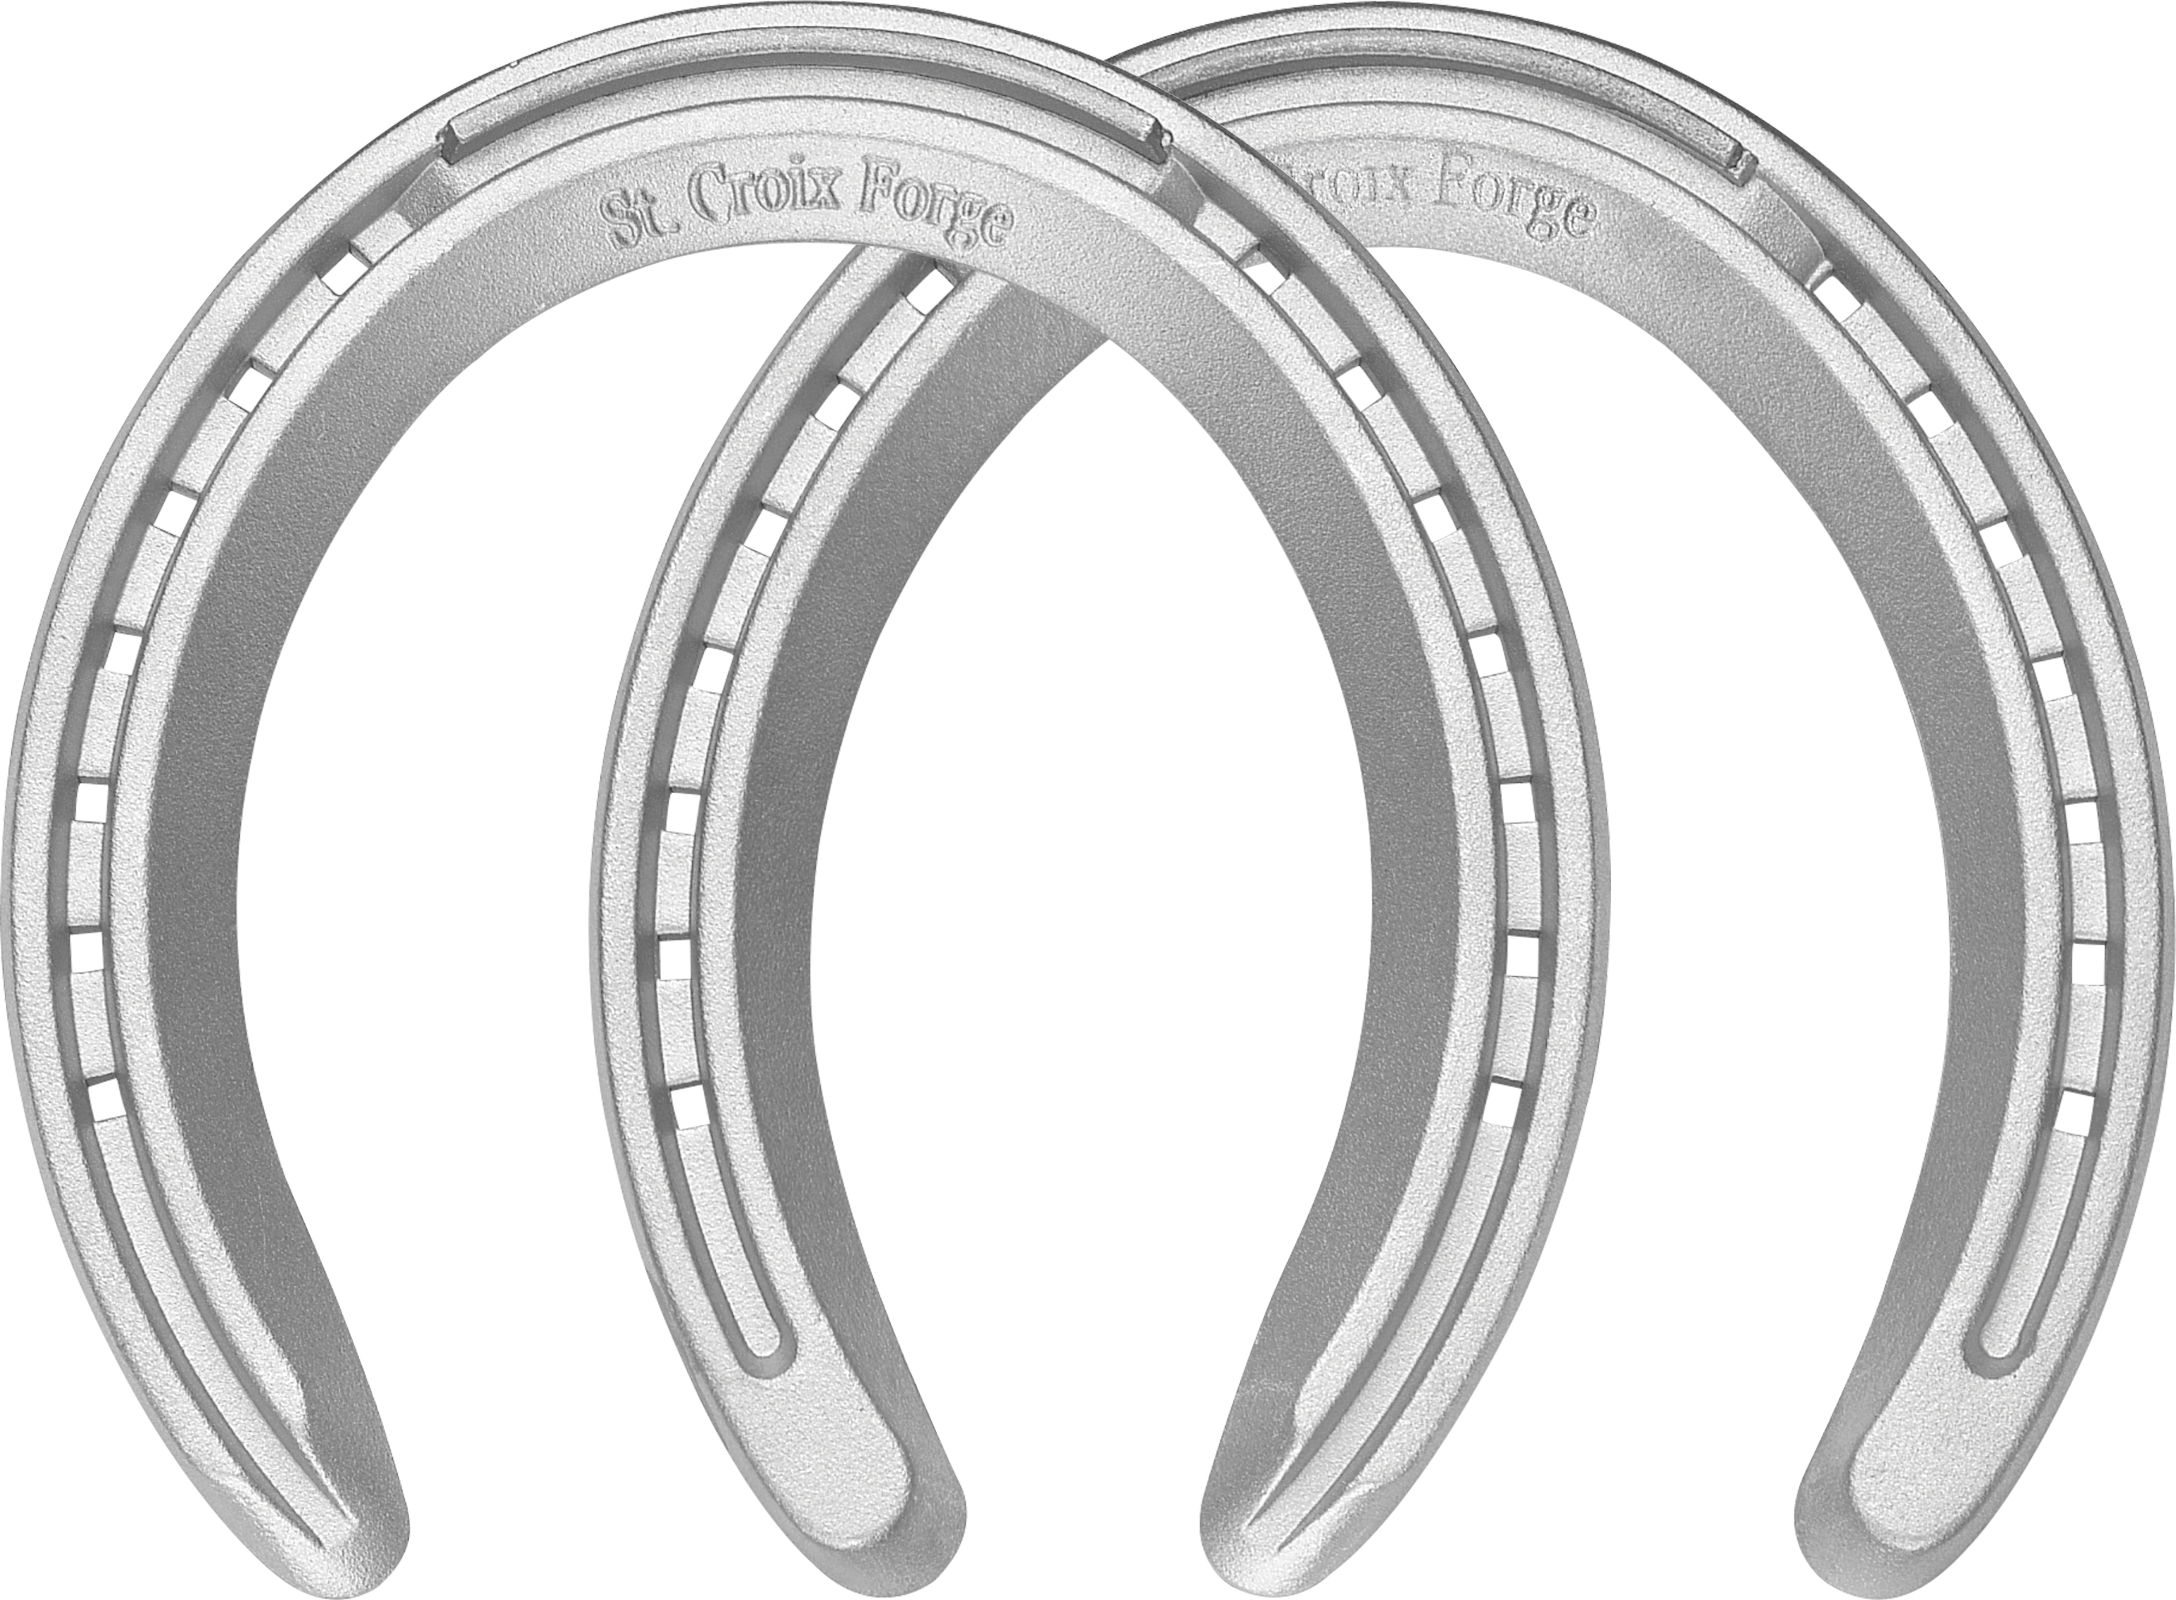 St. Croix XLT horseshoes, front and hind, bottom view